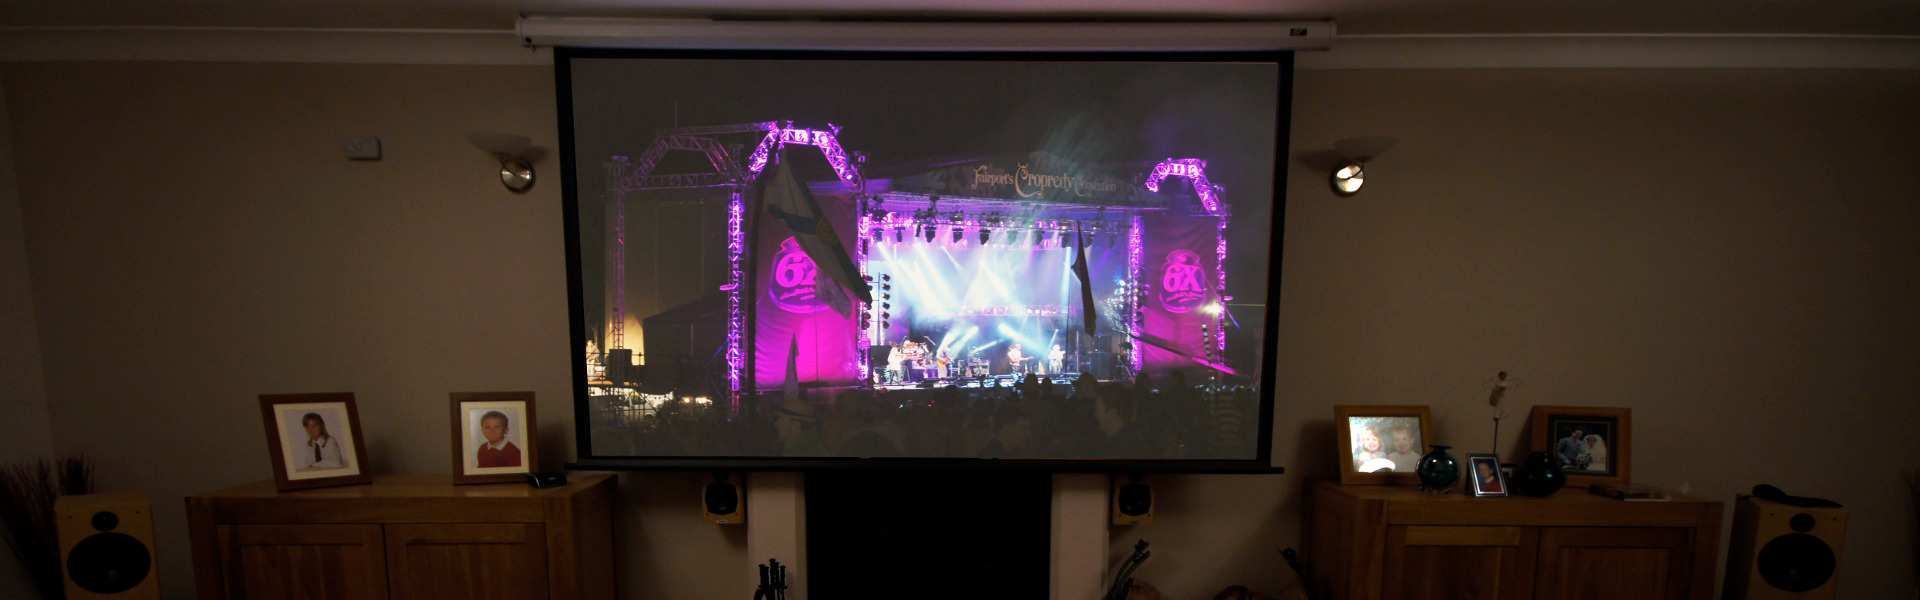 Head-on-Pj-screen-Live-music-stage1920X600